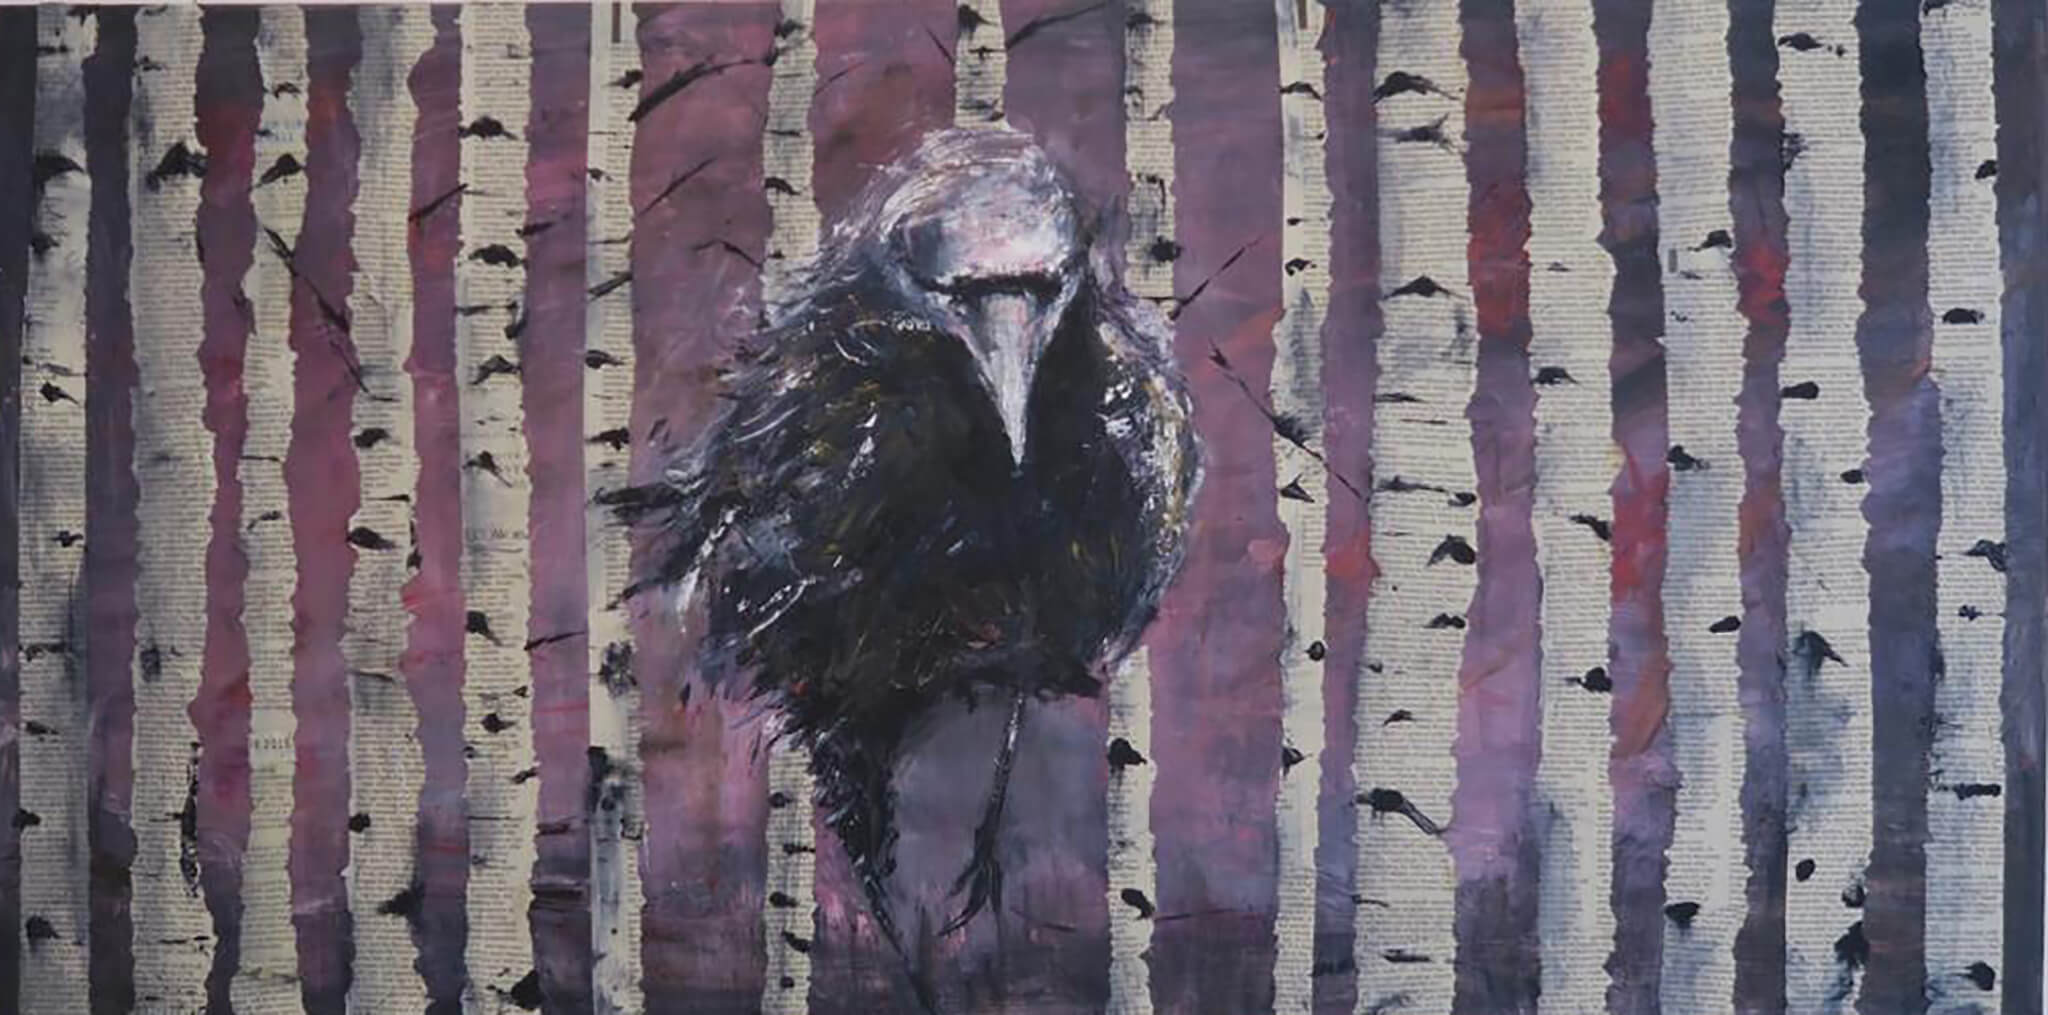 Raven in the Woods by Sarita Keeler